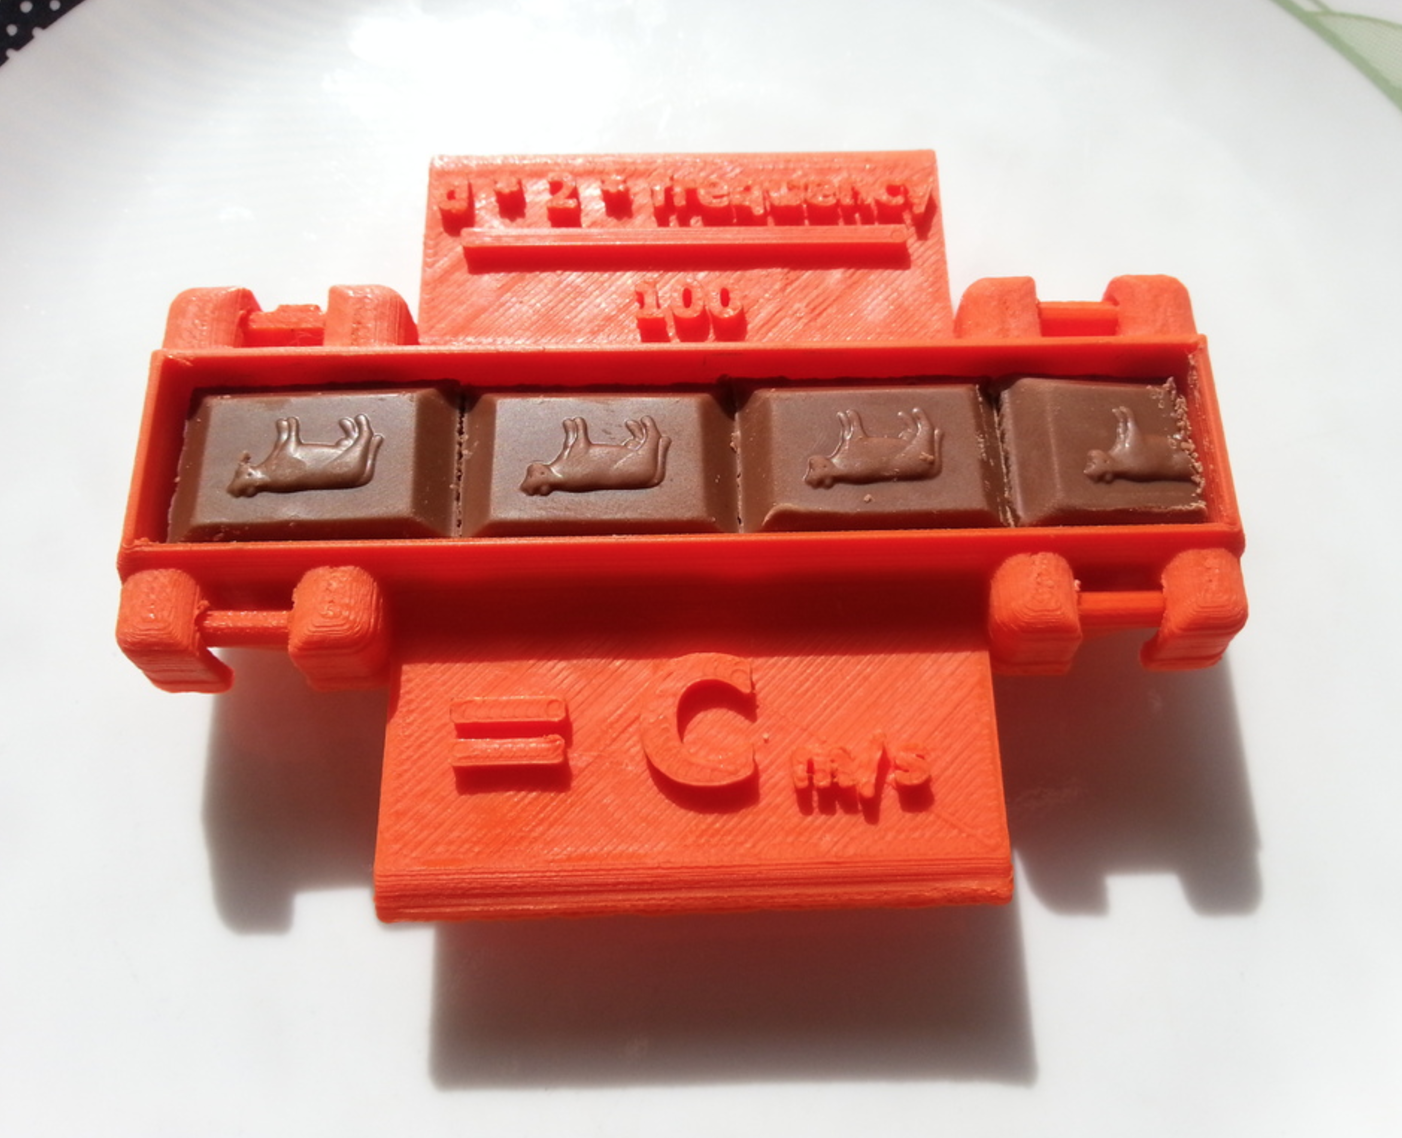 Capture d'écran 2016-12-14 à 16.29.12.png Download free STL file Measure the Speed of Light With Chocolate! • 3D printable design, Yuval_Dascalu